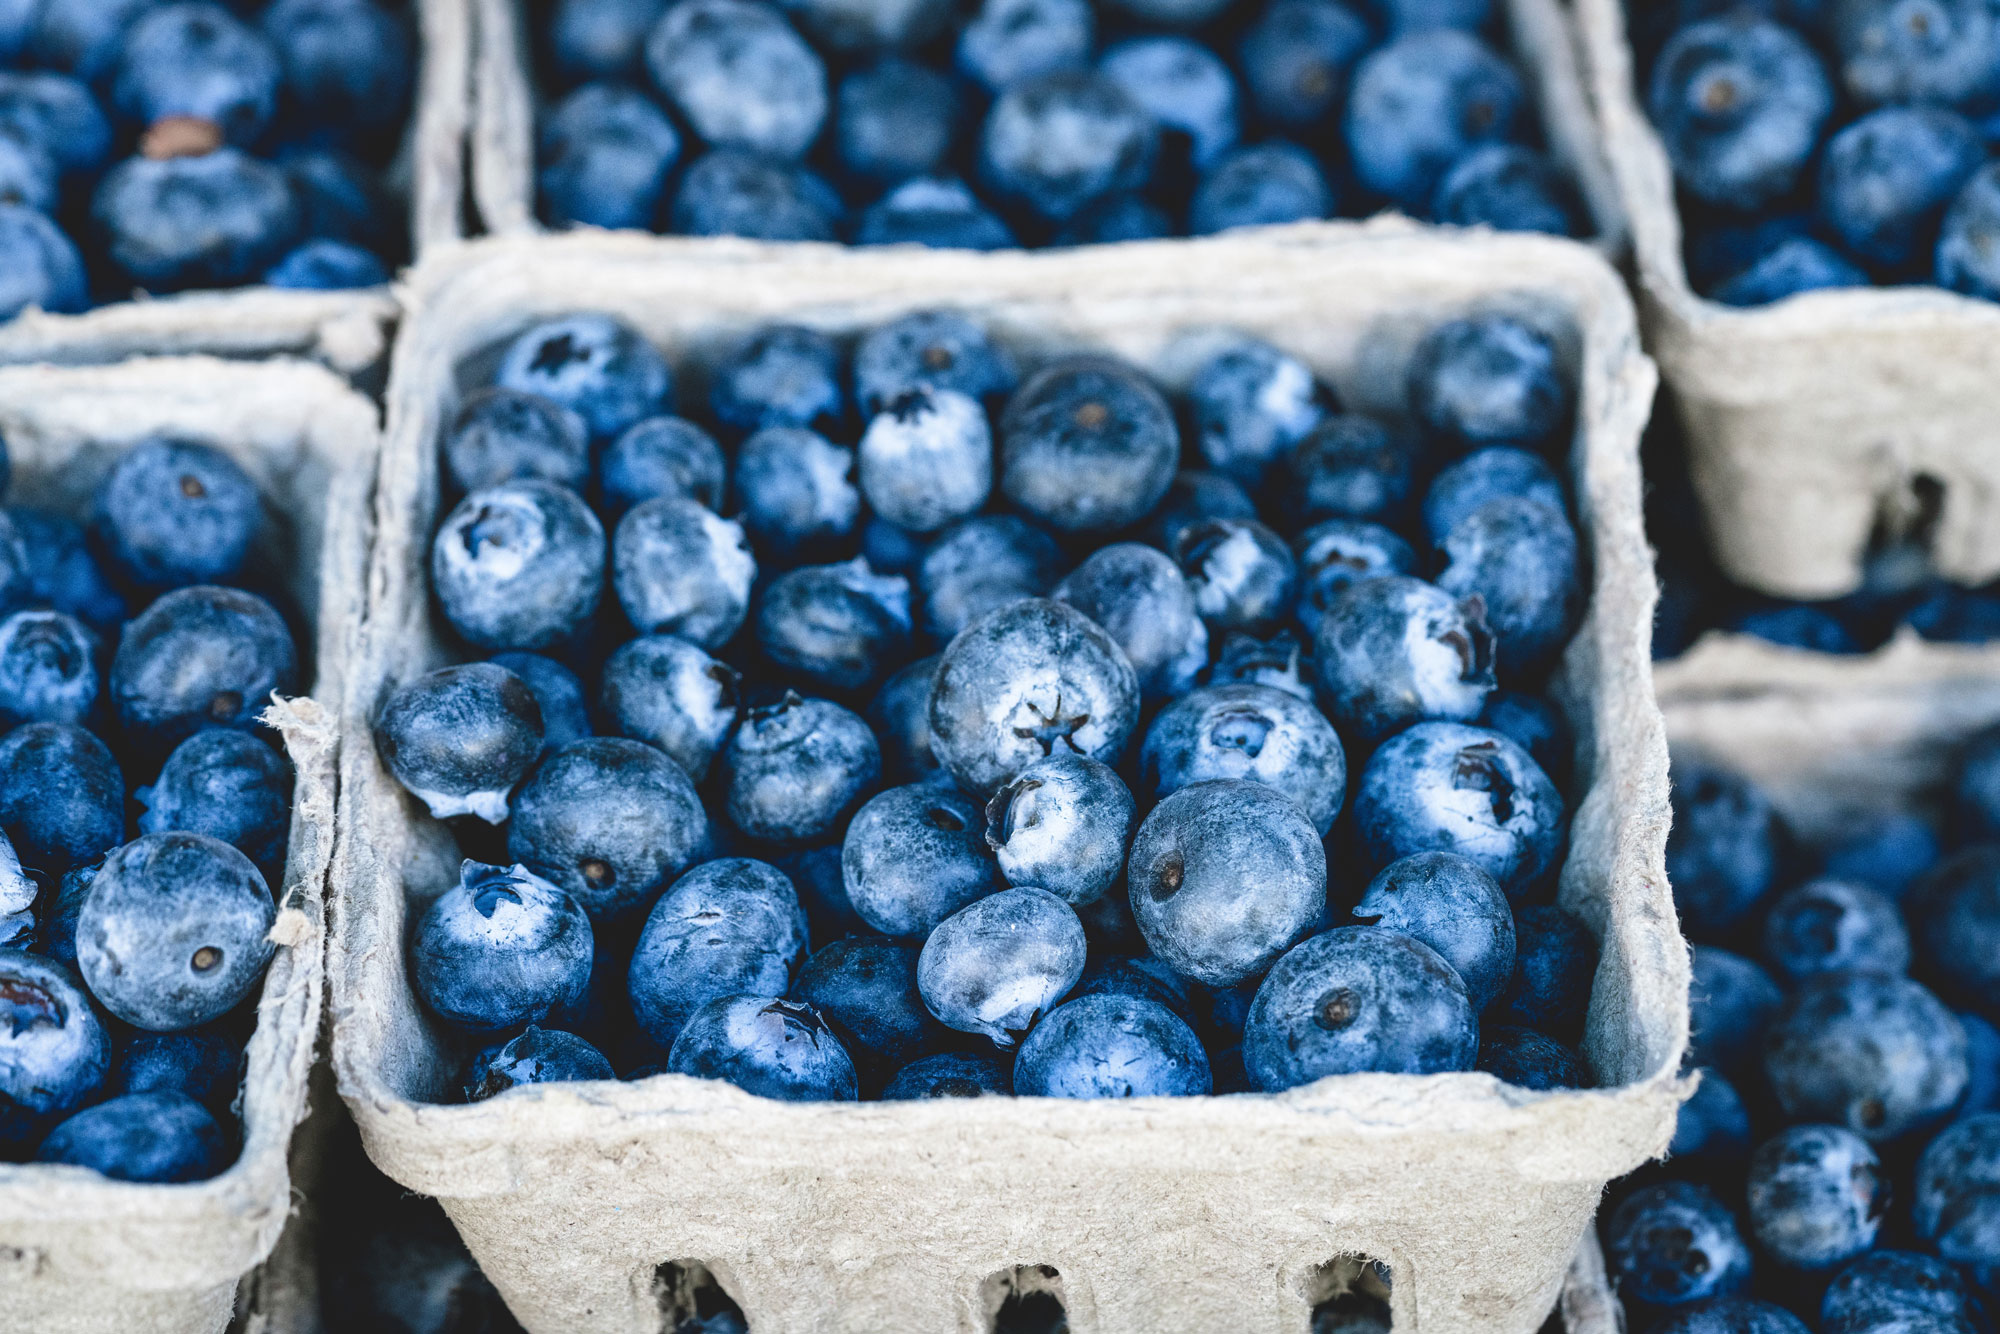 Closeup of blueberries